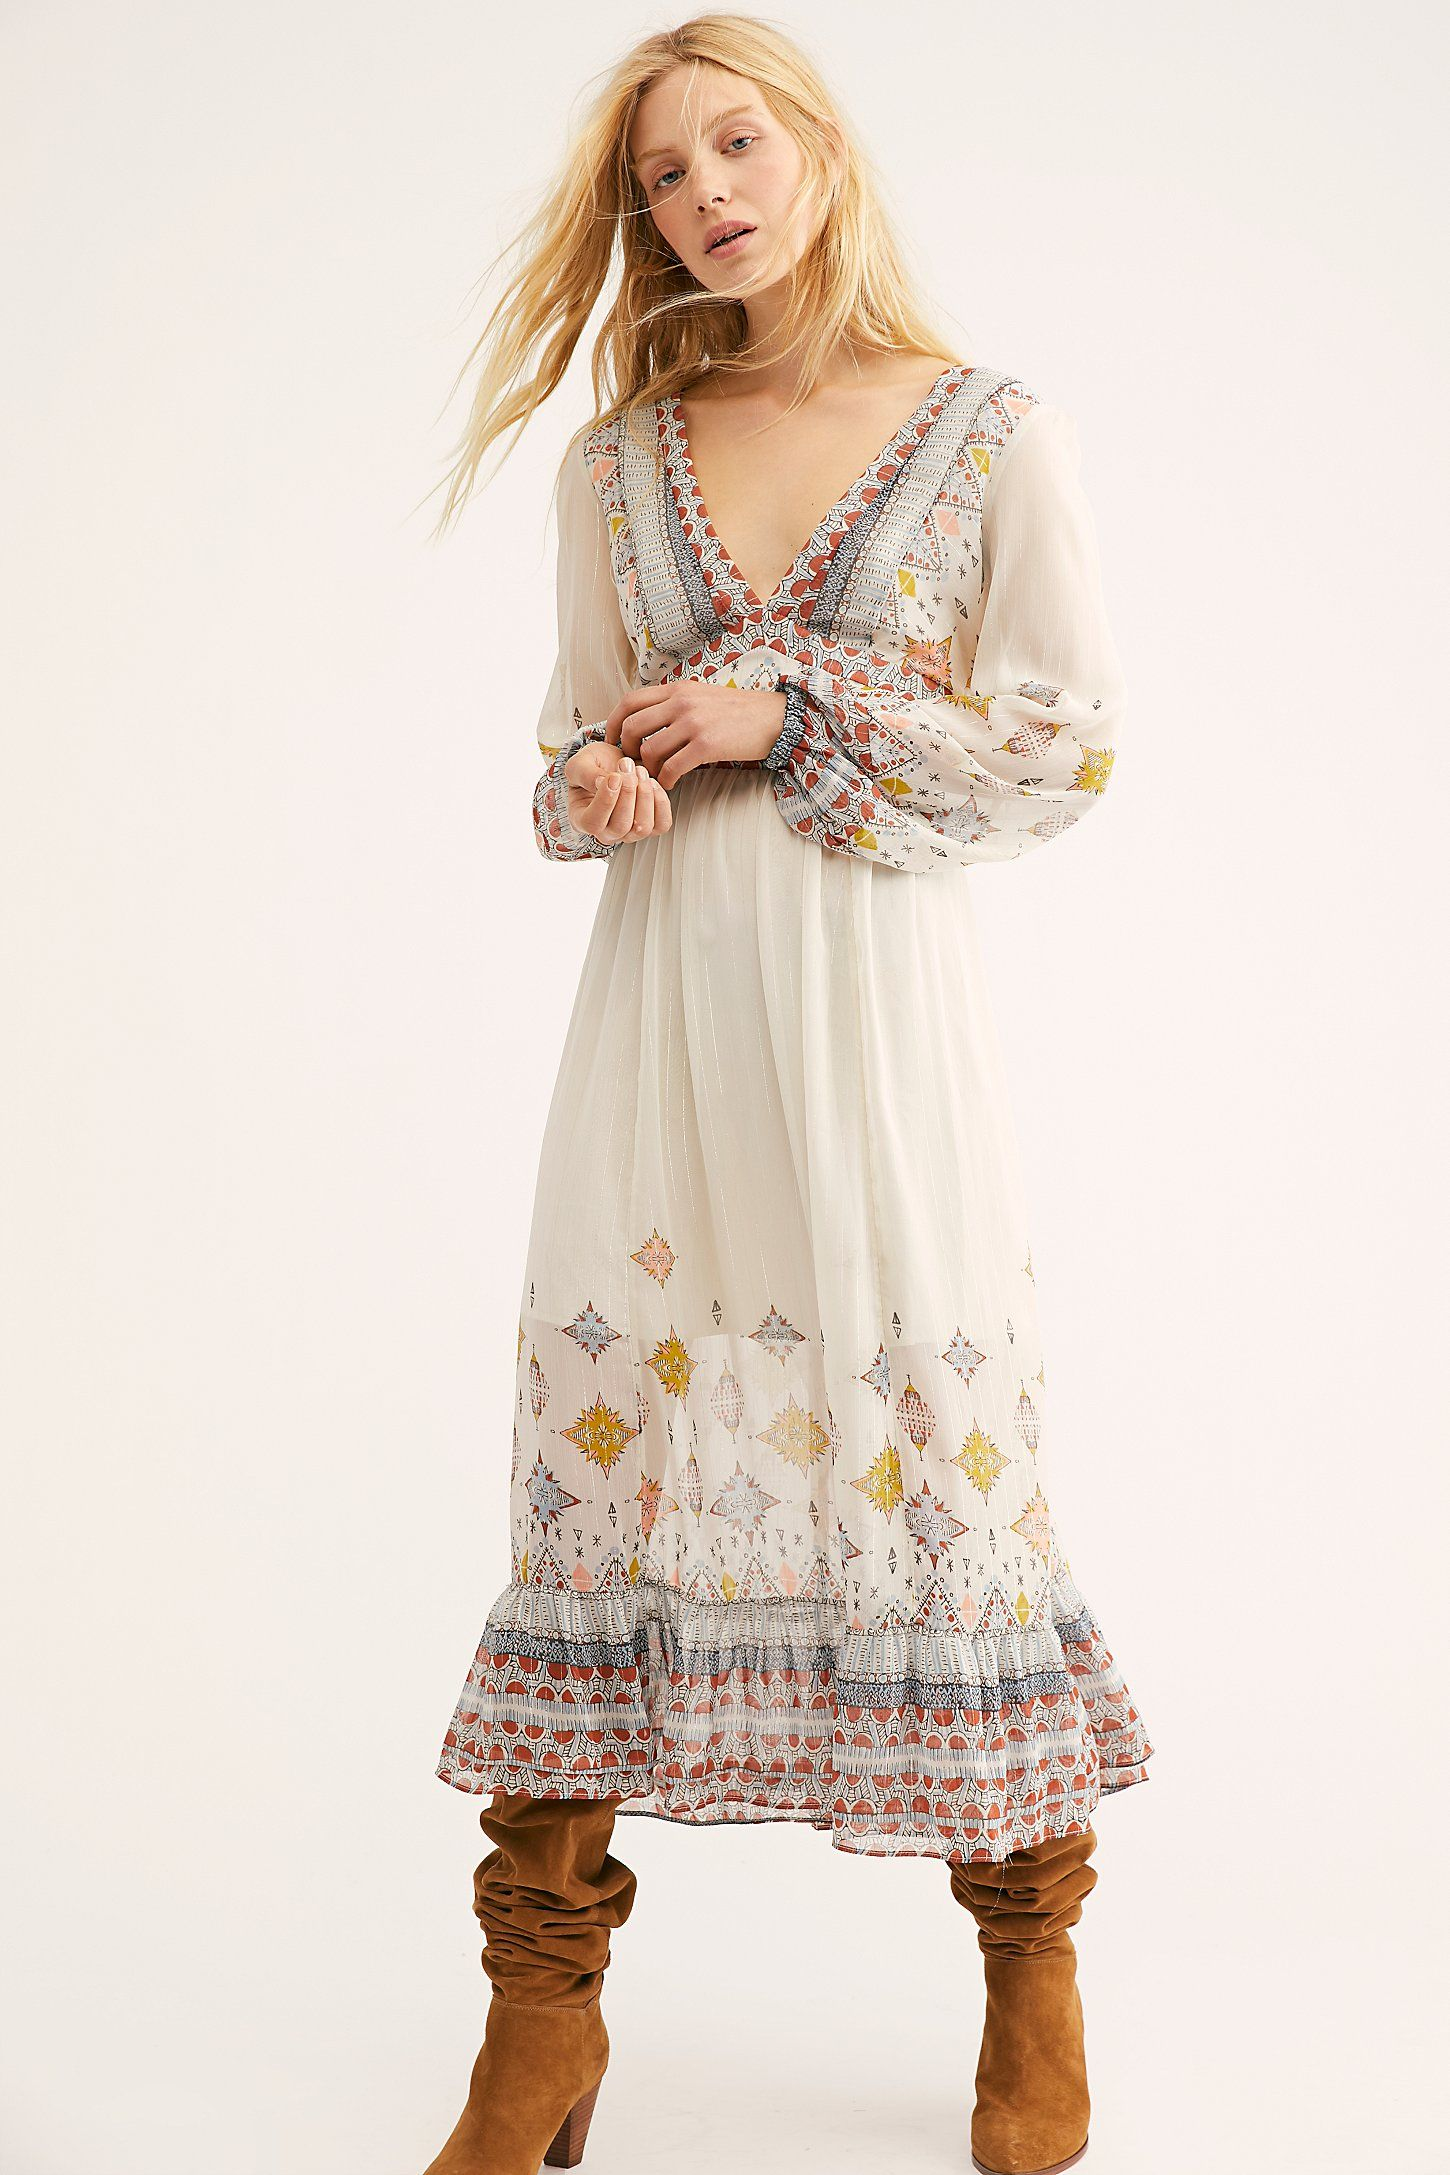 0fad321fa411c Wishing Well Midi Dress in 2019 | Garb | Boho dress, Maxi skirt ...